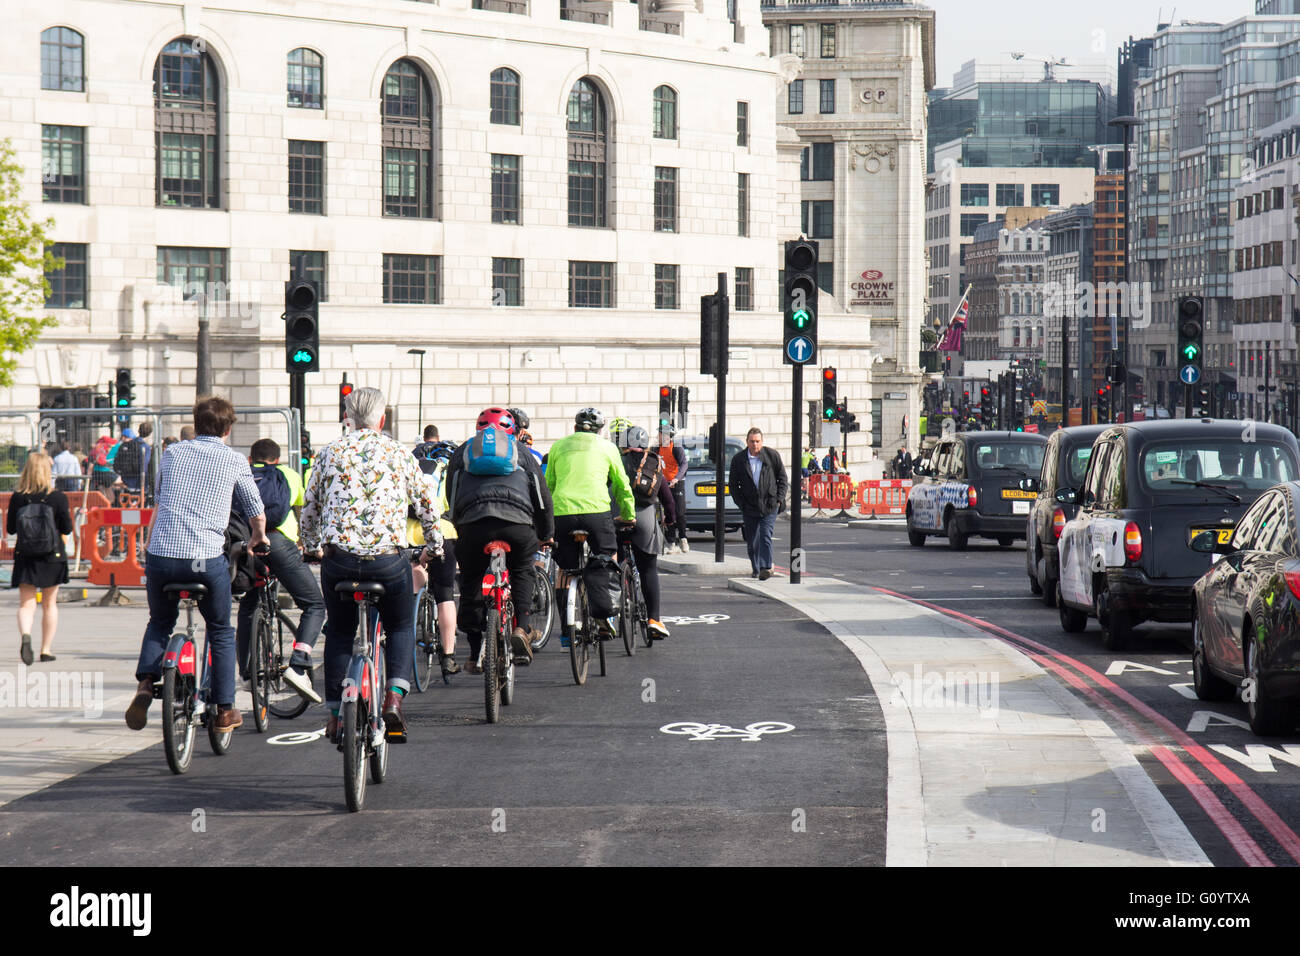 London, UK. 6th May, 2016. Two new 'segregated cycle superhighway' cycle tracks open in central London in - Stock Image